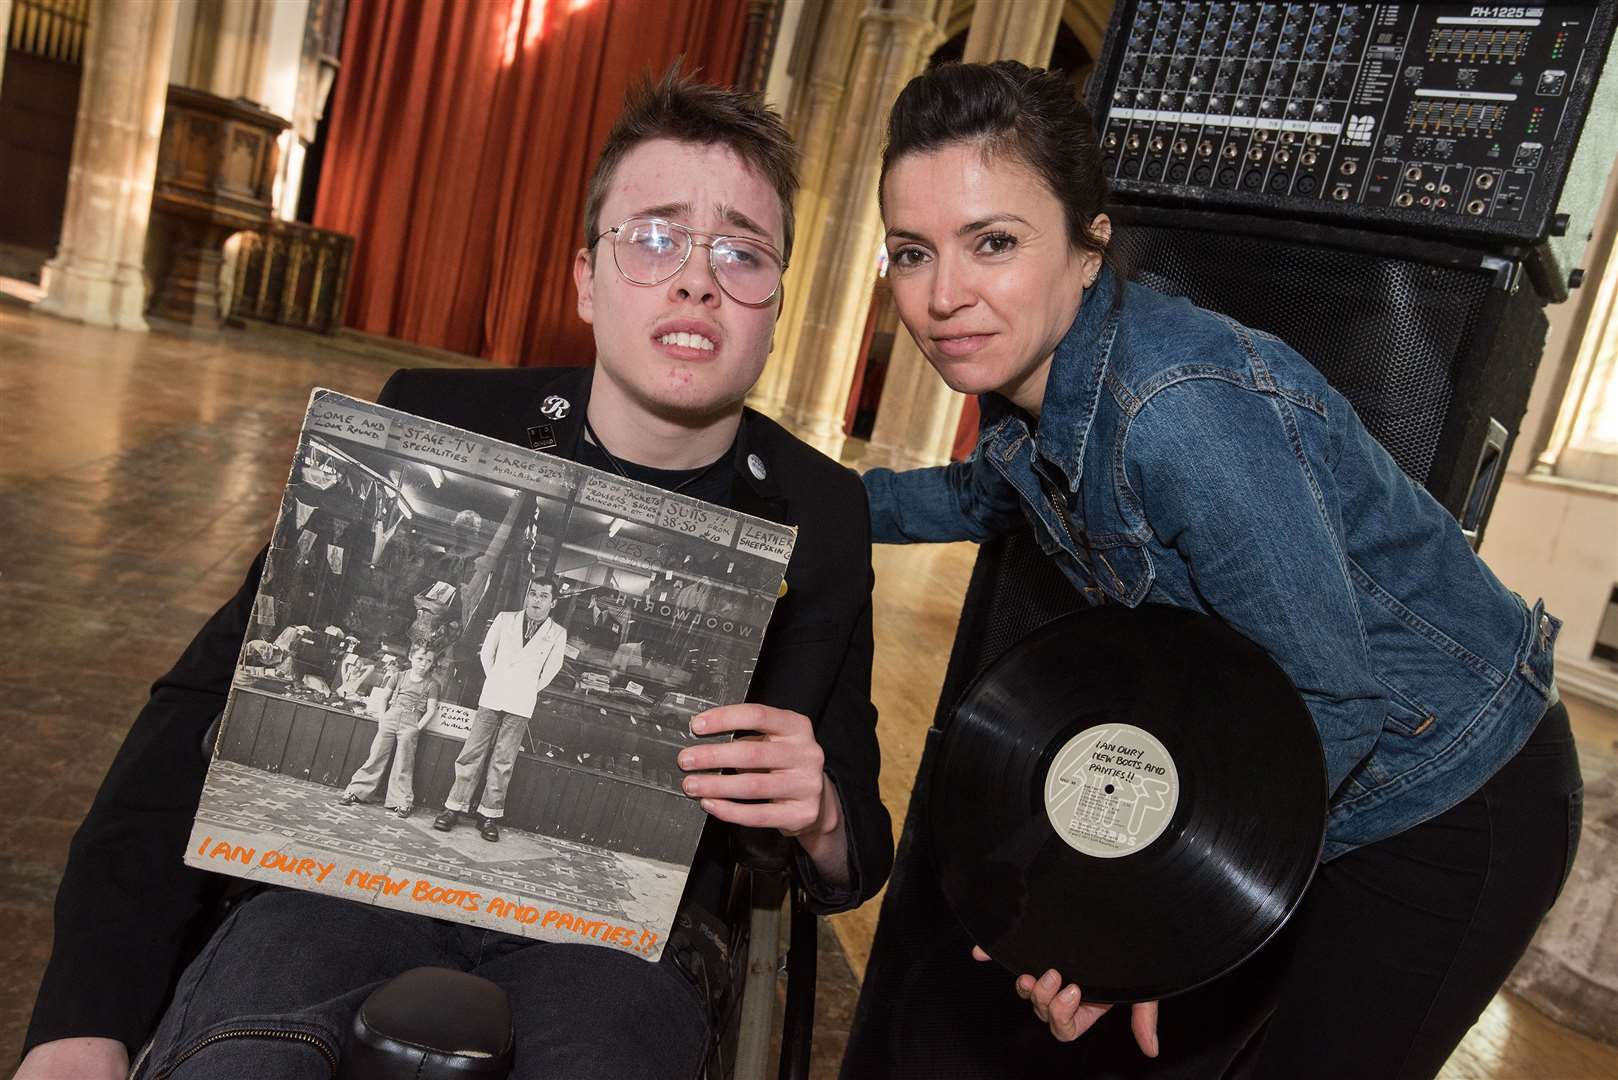 15-year-old Dylan Barton from Sible Hedingham with Gemma Mackman and a copy of his favourite vinyl album by Ian Drury which is being introduced and played at St Peter's for Record Day. The event is to raise money for The Bridge Project.. Picture by Mark Westley. (8407674)